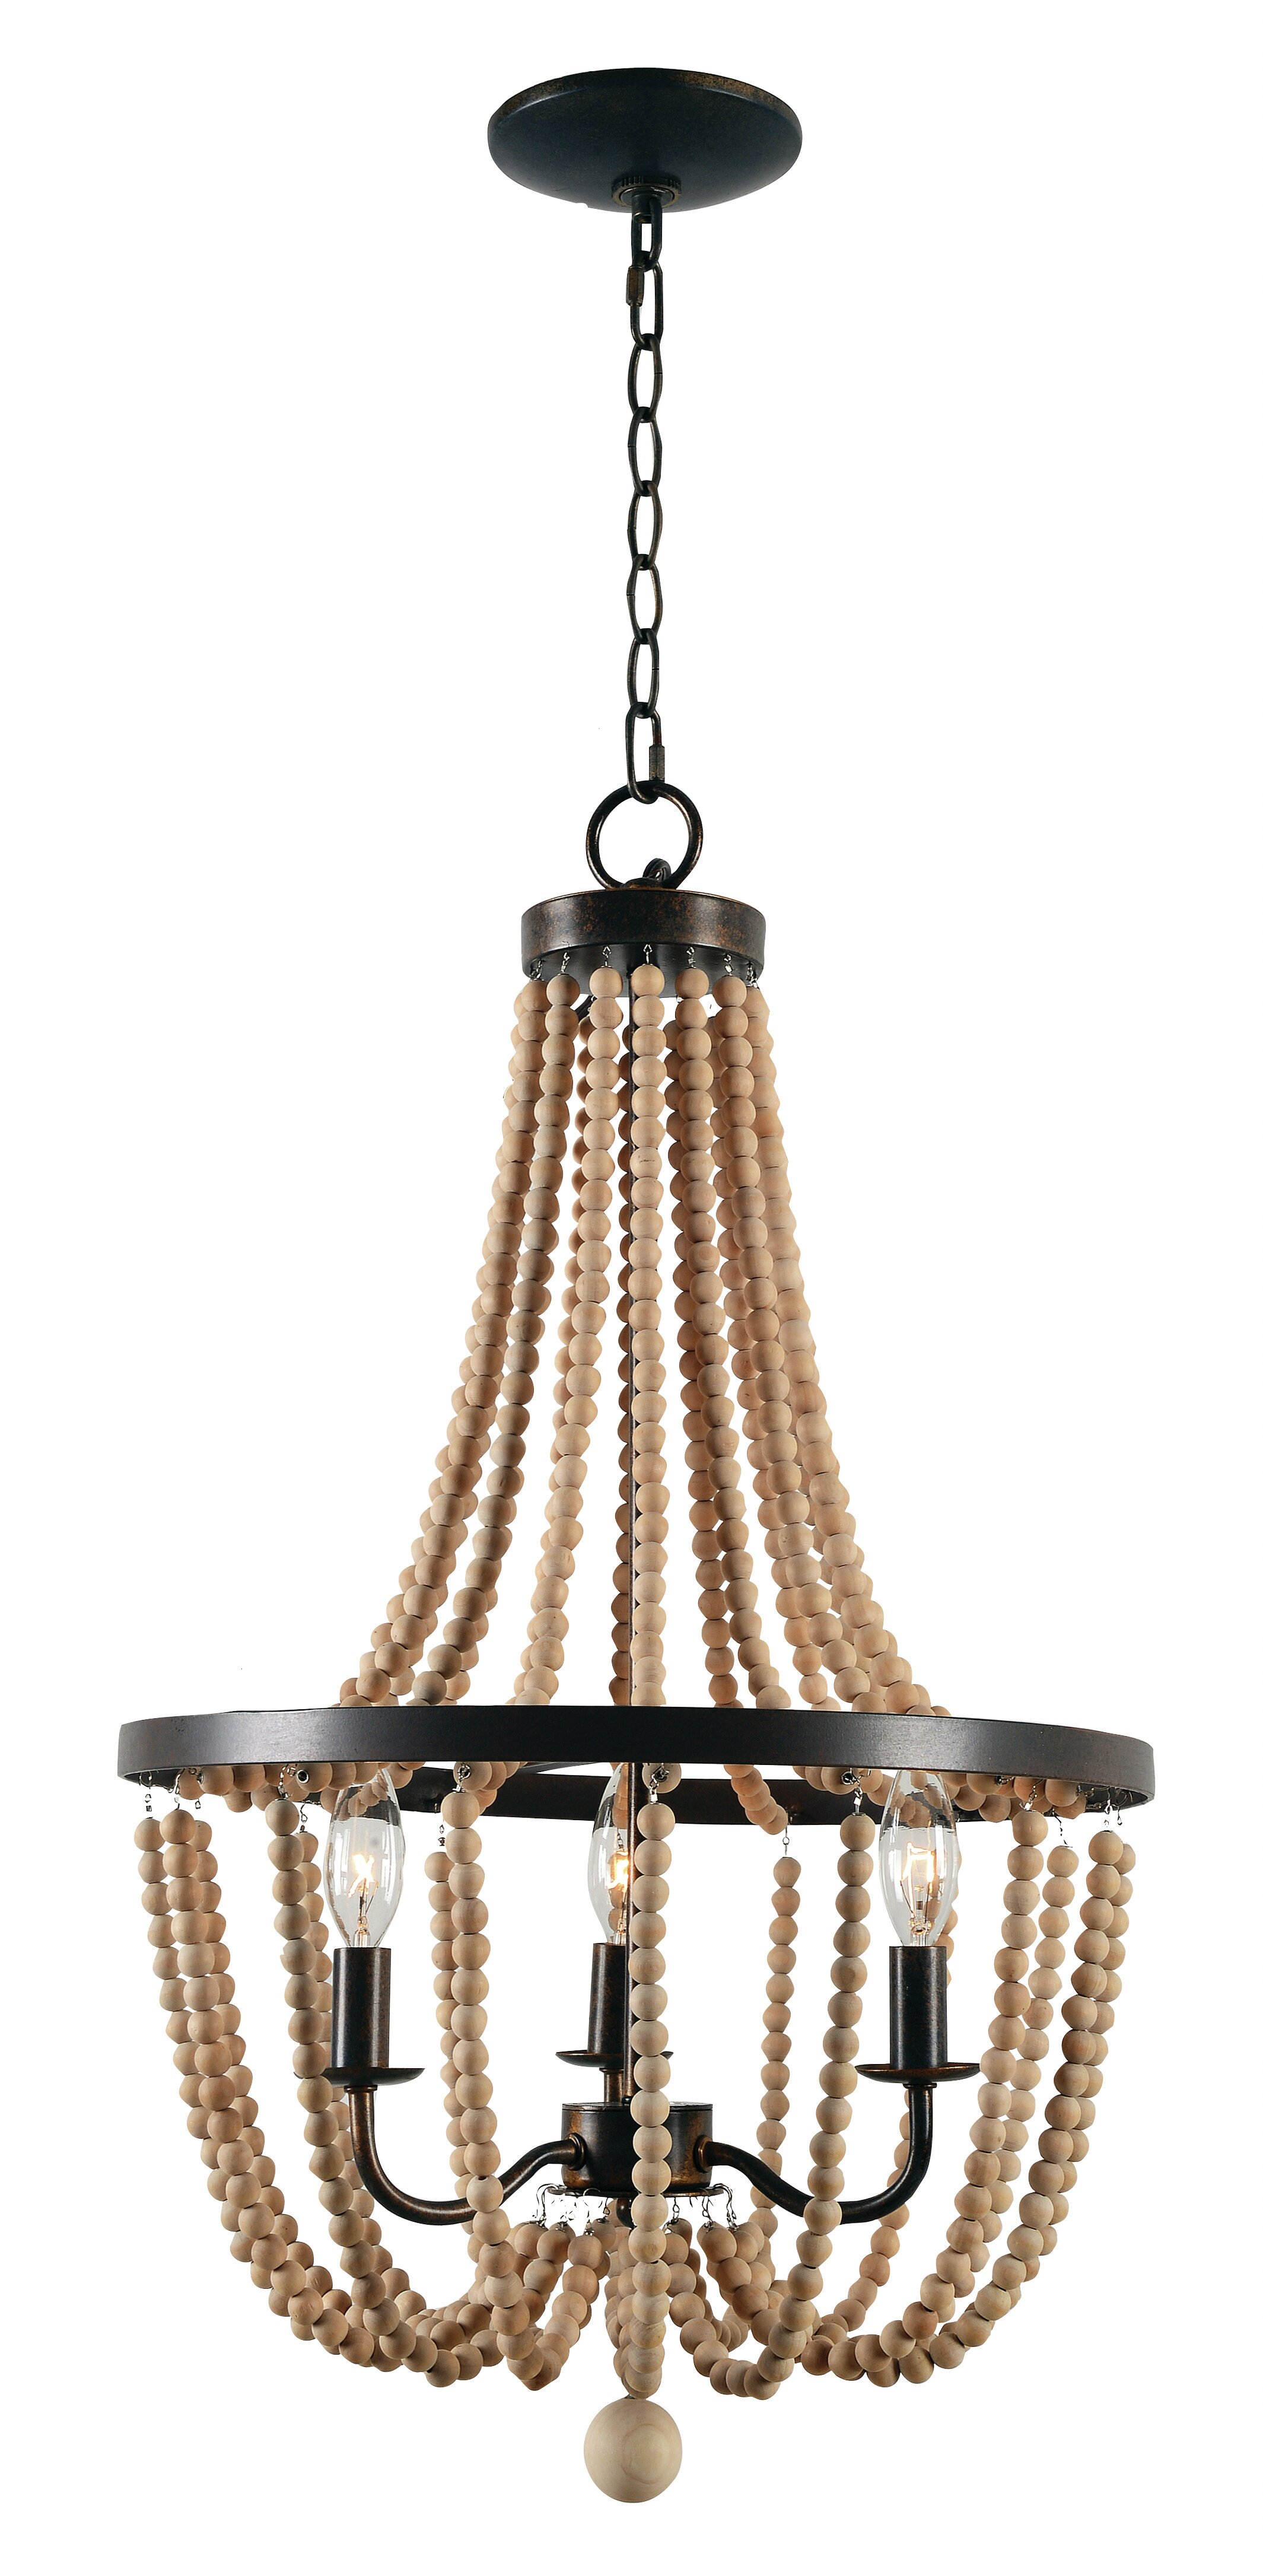 Adelina 3 Light Candle Style Empire Chandelier With Wood Accents Reviews Joss Main